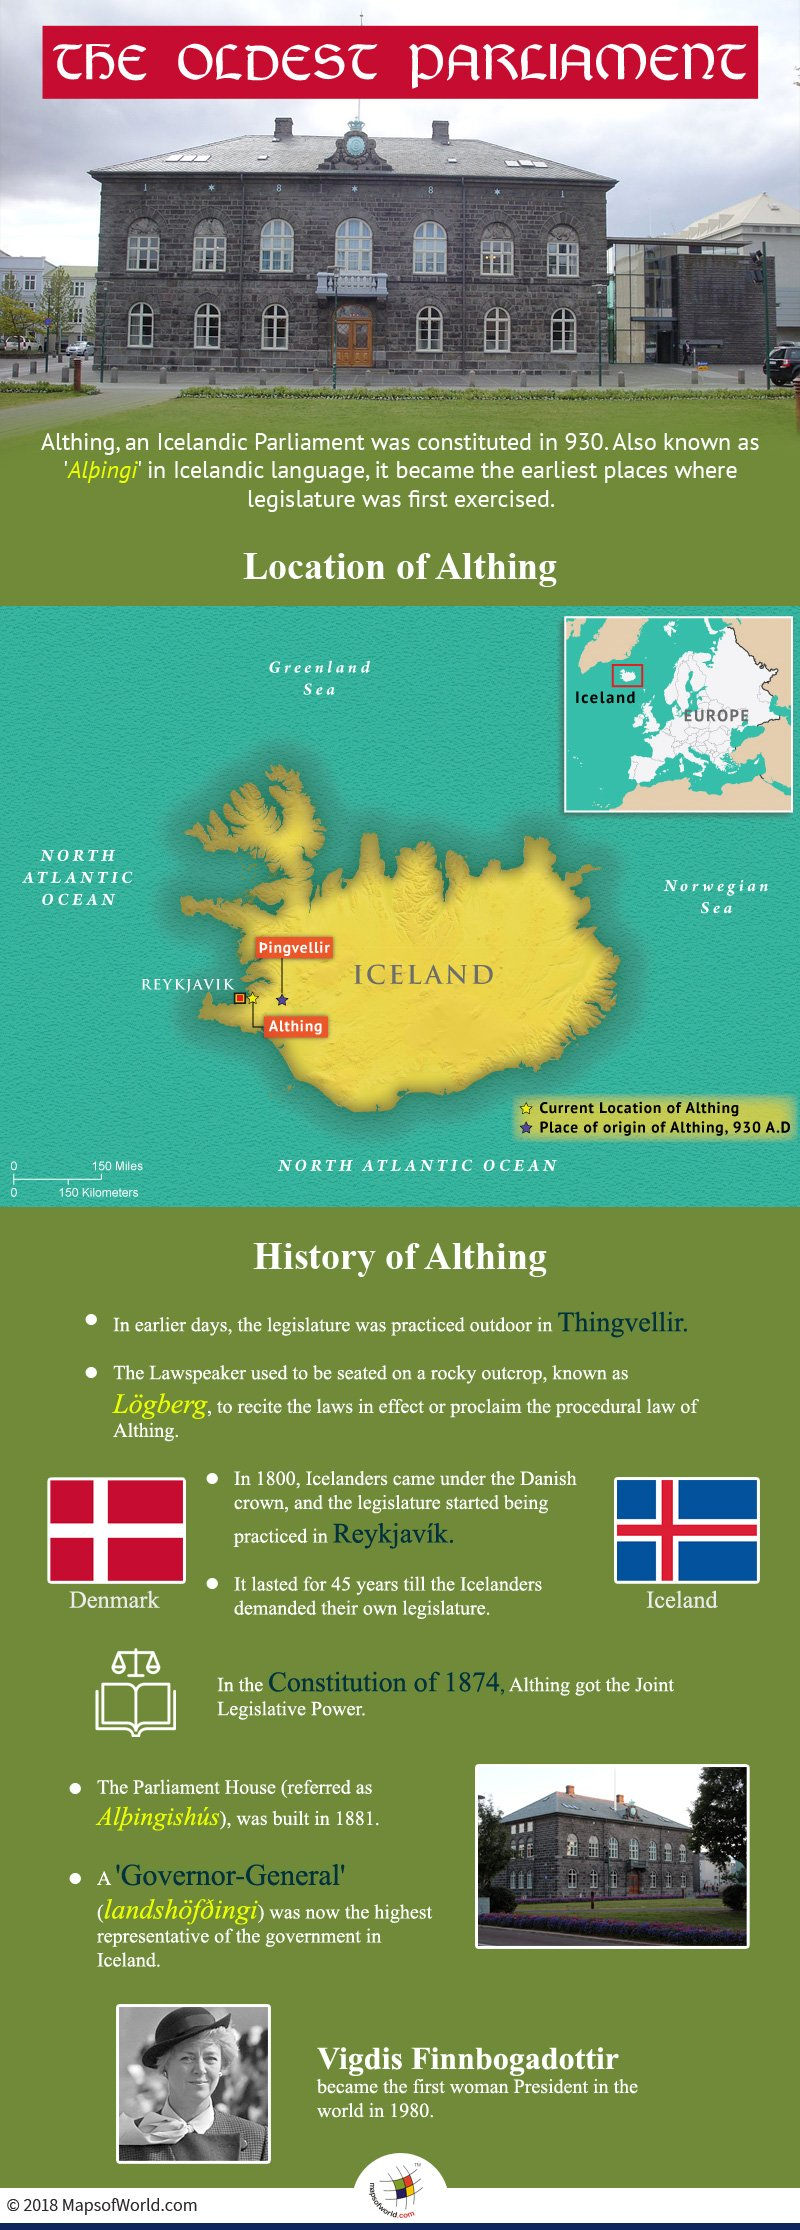 Althing, an Icelandic Parliament is the Oldest in the World